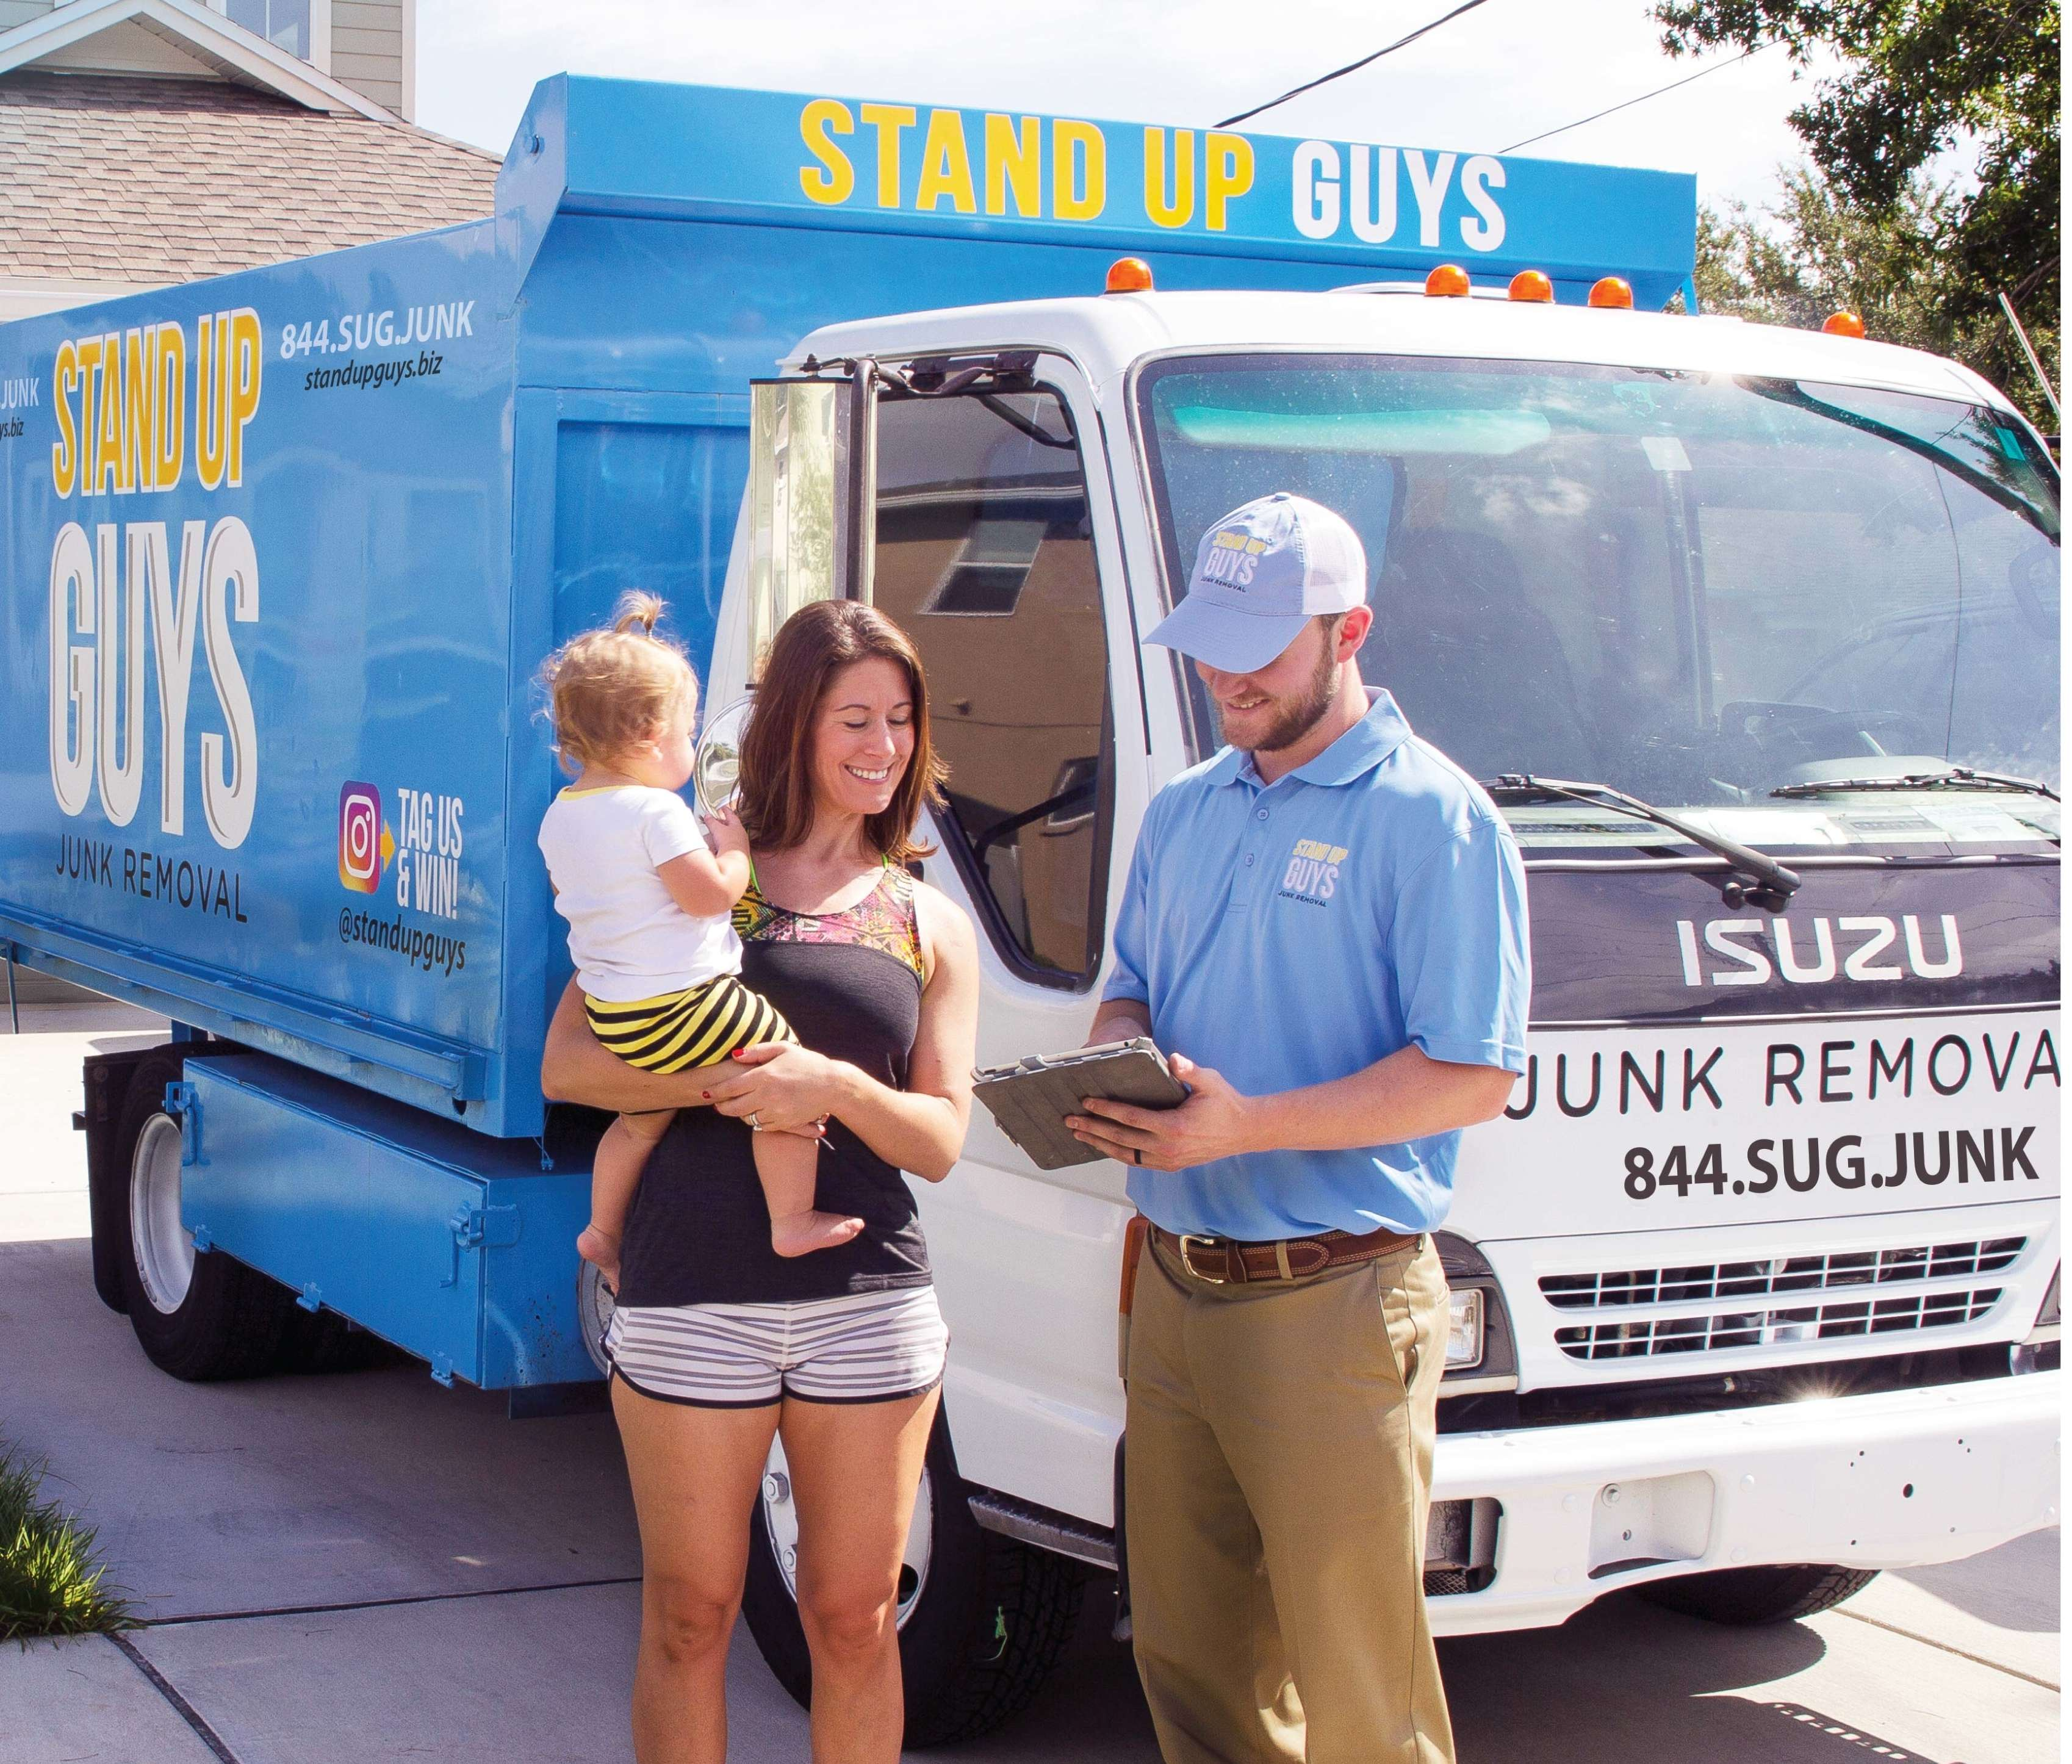 Junk Removal | Stand Up Guys Junk Removal